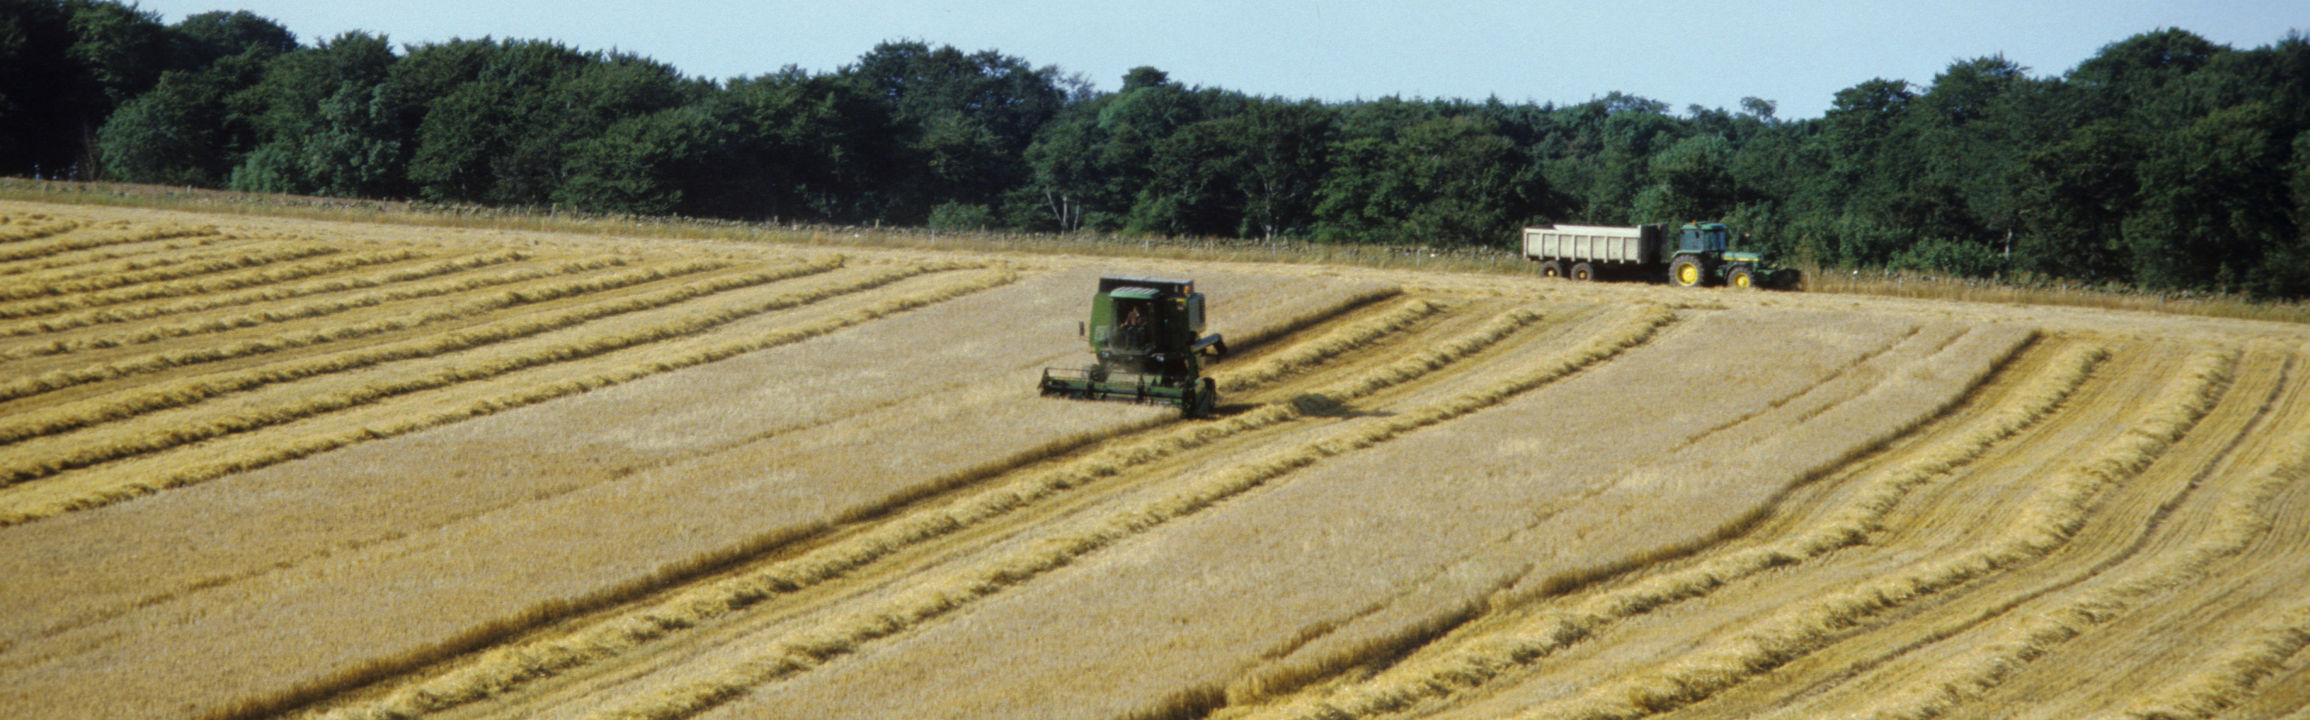 An Image of a barley field that is being harvested